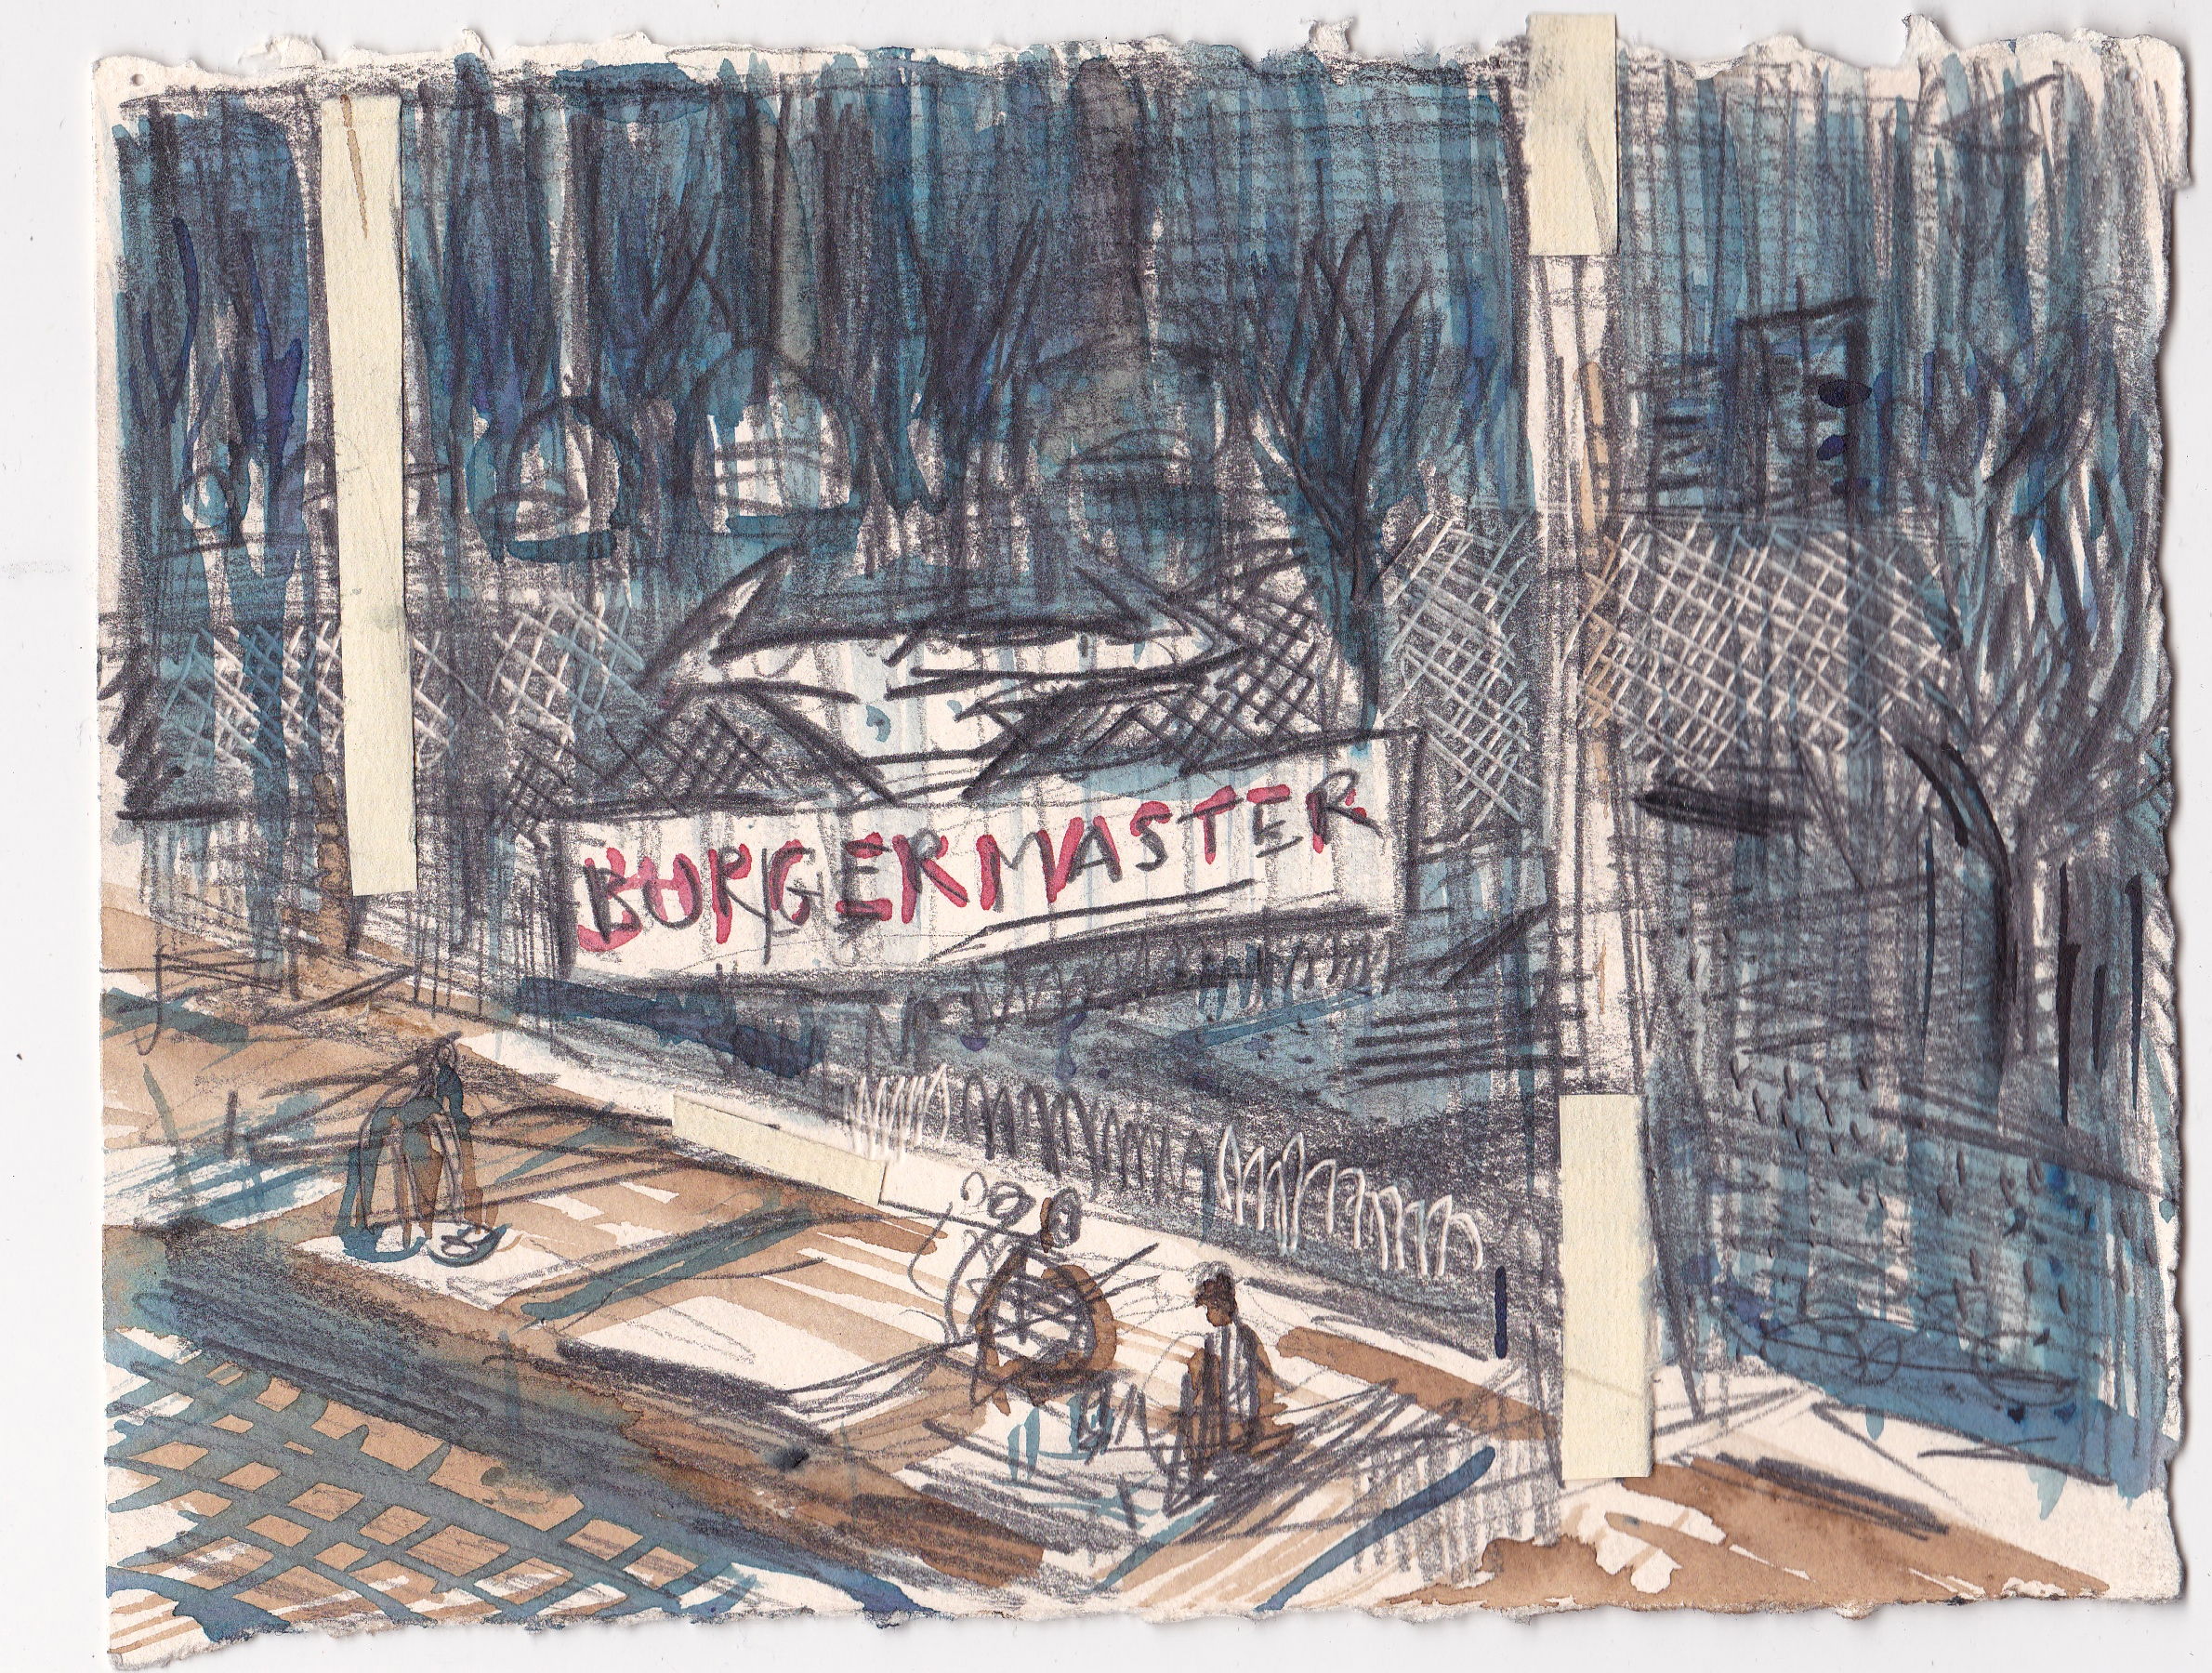 Burgermaster , 2014, graphite and ink on paper, 5.75x8.5 inches